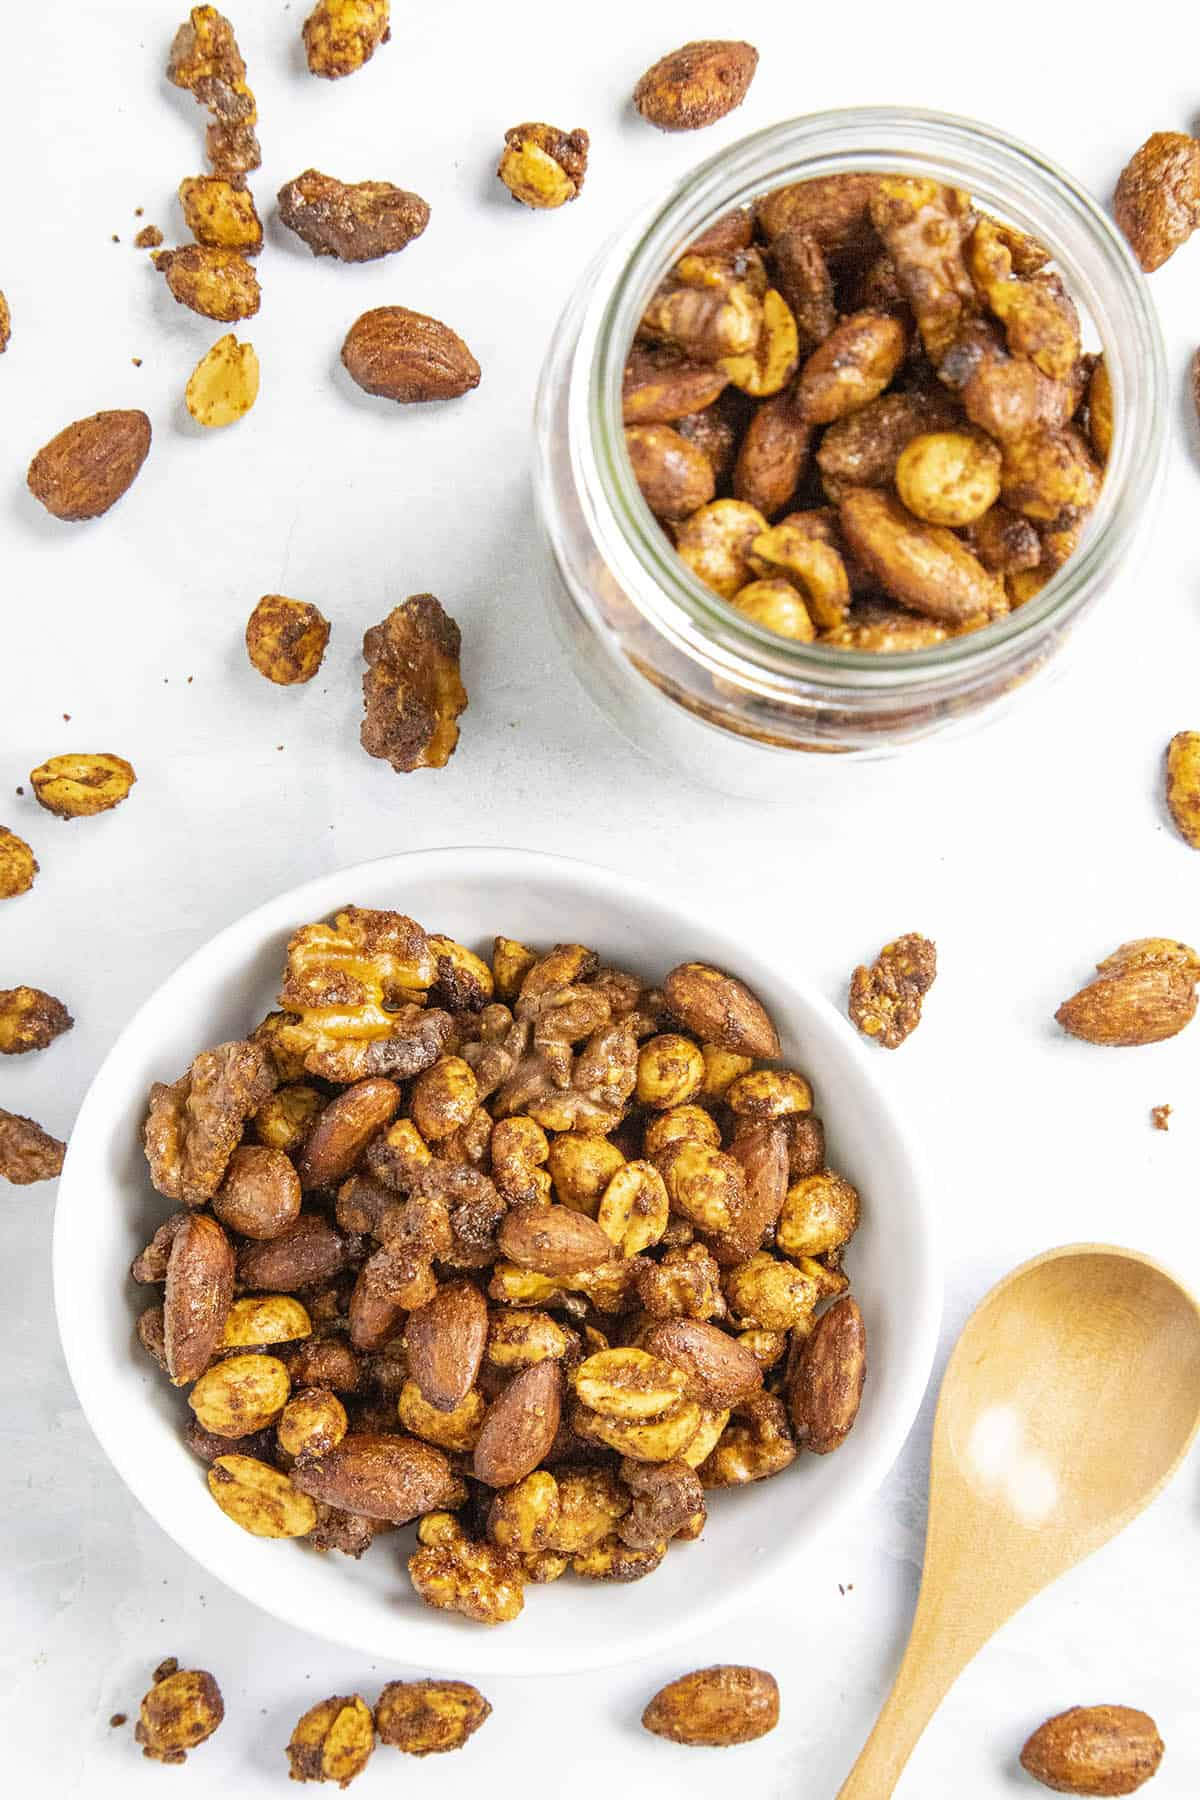 Spiced Nuts in a bowl and a jar